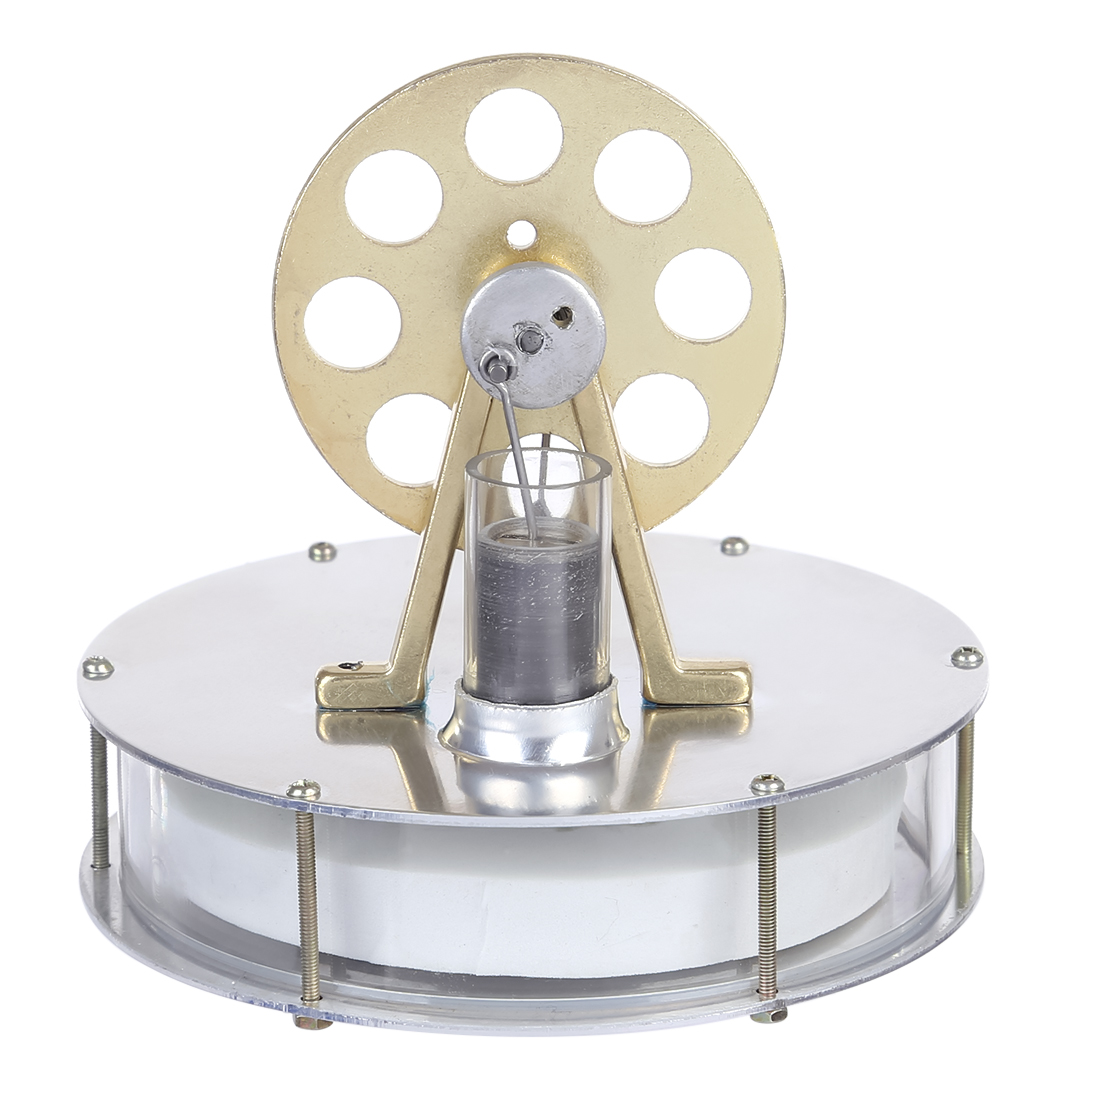 New Arrive Stirling Low Temperature Engine Motor Steam Heat Educational Model Toys for Children Adult 2019New Arrive Stirling Low Temperature Engine Motor Steam Heat Educational Model Toys for Children Adult 2019